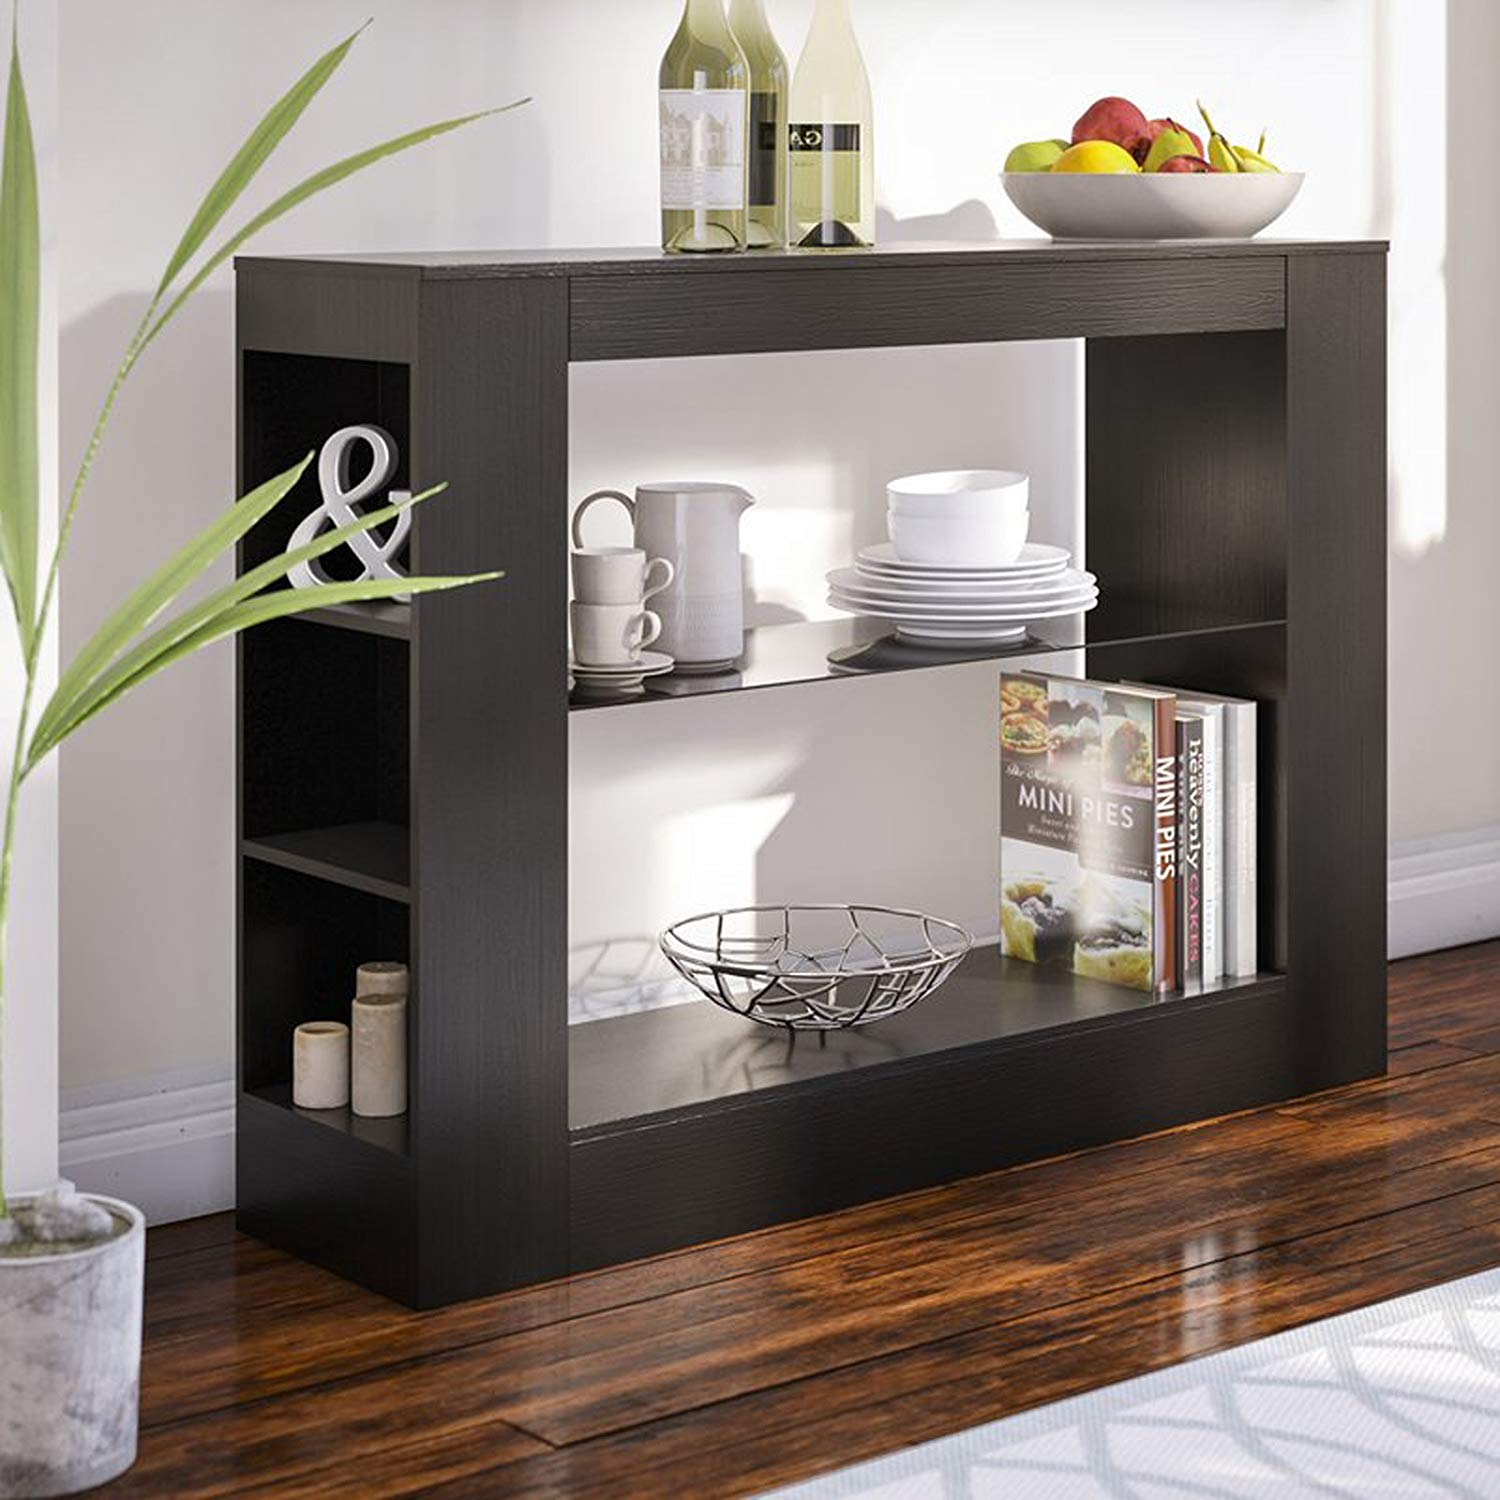 Cheap Black Dining Buffet, Find Black Dining Buffet Deals On intended for Industrial Cement-Like Multi-Storage Dining Buffets (Image 7 of 30)